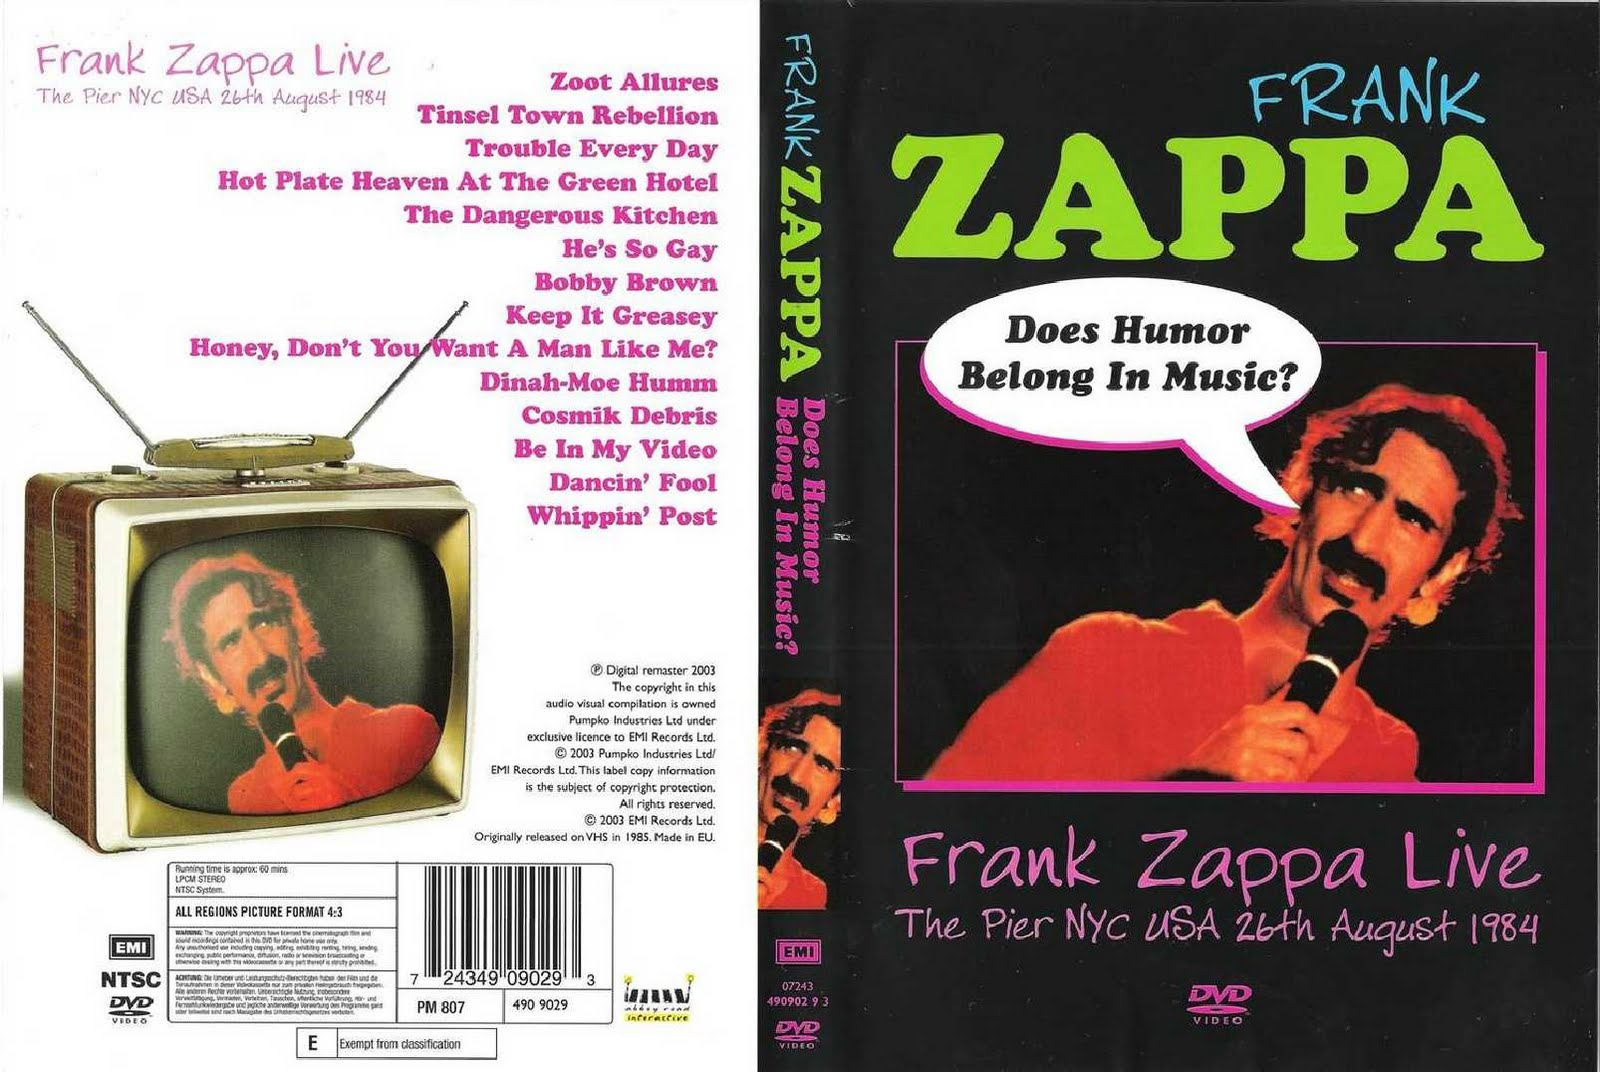 http://2.bp.blogspot.com/_se0zHB8H7oU/S_MeCNR4YbI/AAAAAAAACg4/Z9aB36wQCJg/s1600/Frank+Zappa+-+Does+Humor+Belong+In+Music+-+Live+in+New+York+26.08.1984+-+Cover.jpg